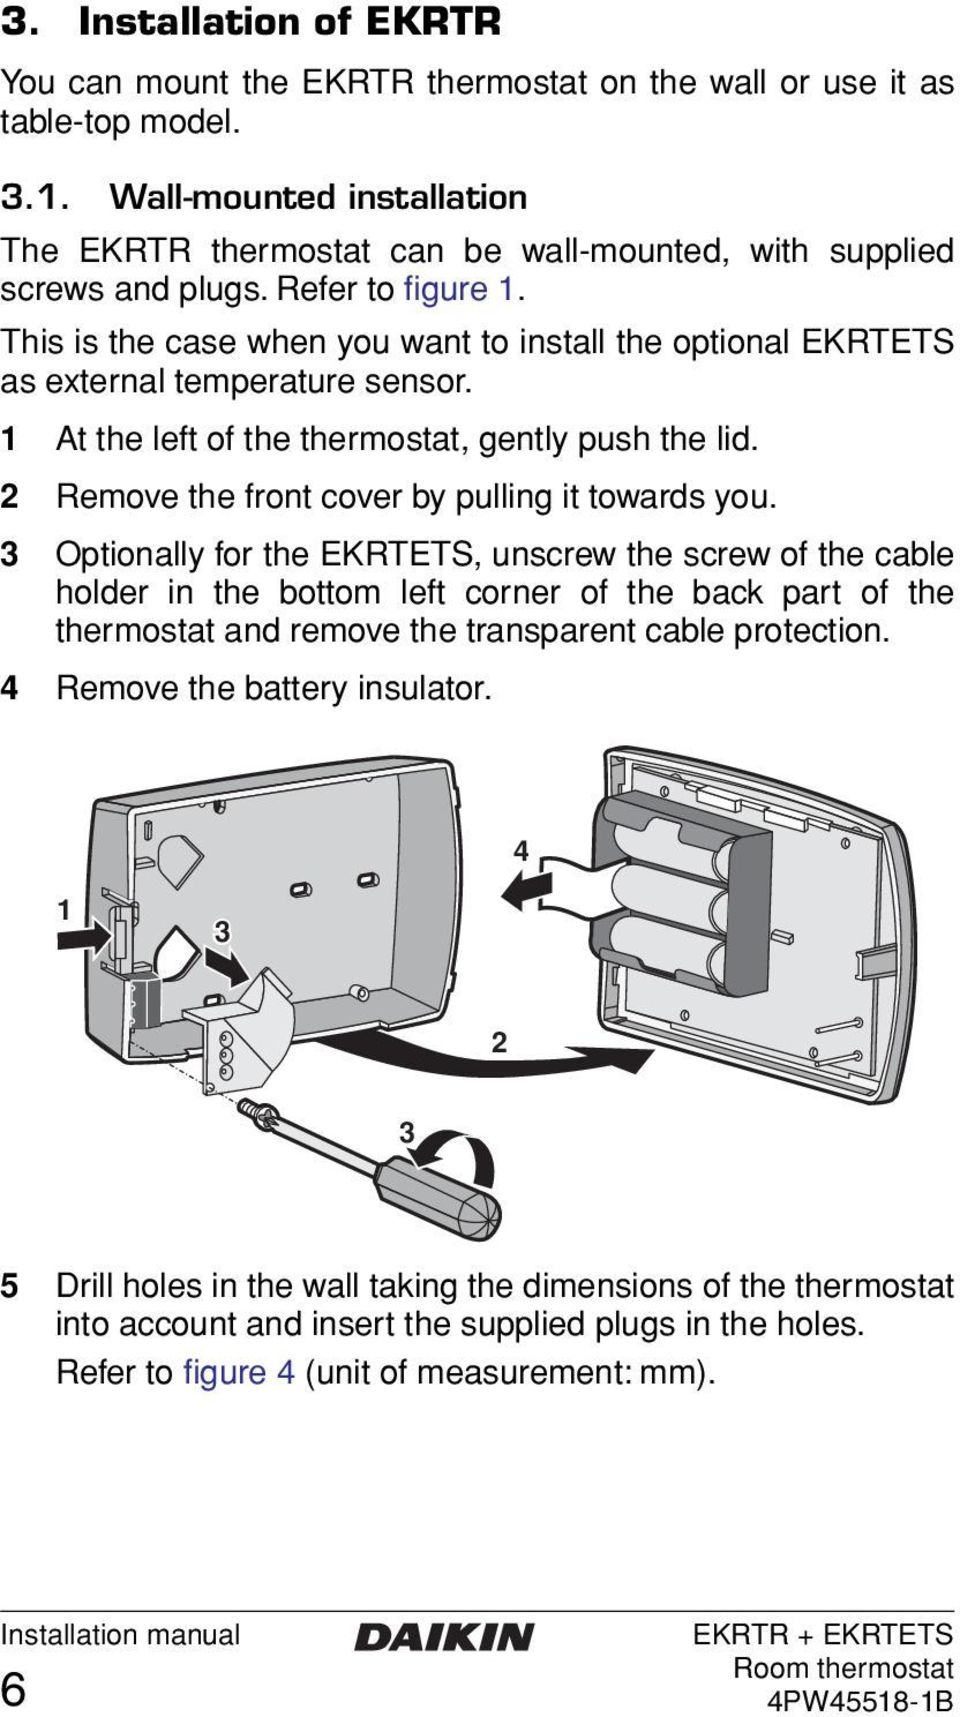 Hunter 44155c Wiring Diagram Library Thermostat Heat Only 44299 44132 Problem No Model